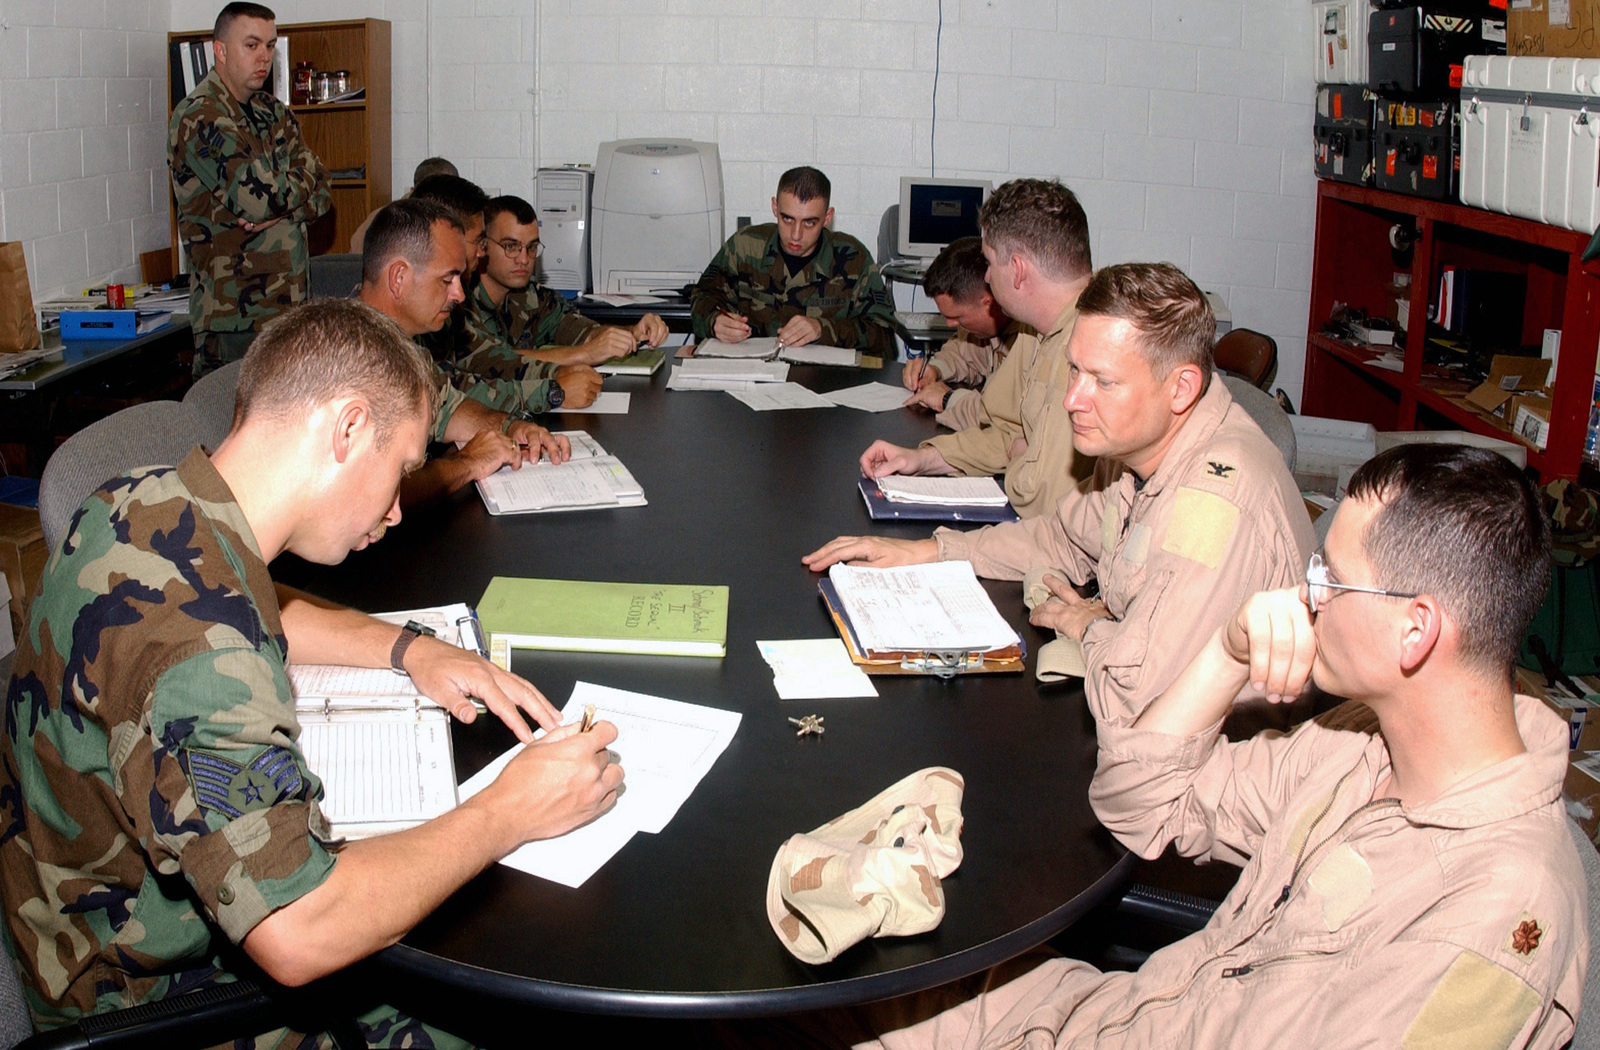 US Air Force (USAF) Colonel (COL) George Gagnon, Navigator, 40th Expeditionary Bomb Squadron (EBS), (second from right) and his crew debrief members of the 40th Expeditionary Maintenance Squadron (EMS) following a successful B-52 Stratofortress close air support mission (CAS) over Iraq during Operation IRAQI FREEDOM